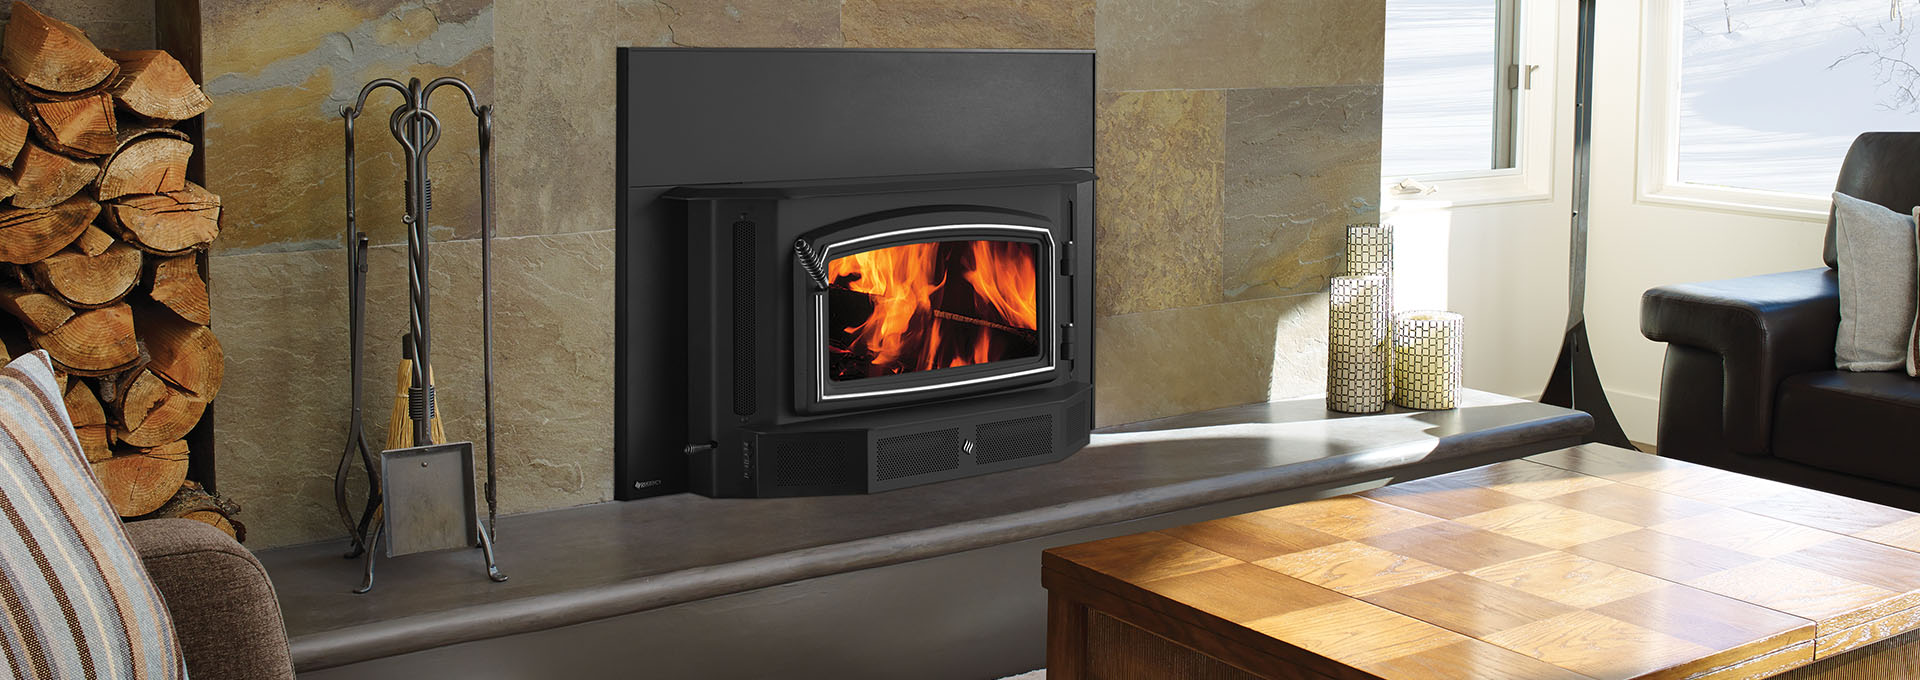 best red can calgary match wood no installations in selection quality deer insert the or fireplace gas fireplaces other electric of provider our and burning inserts biggest